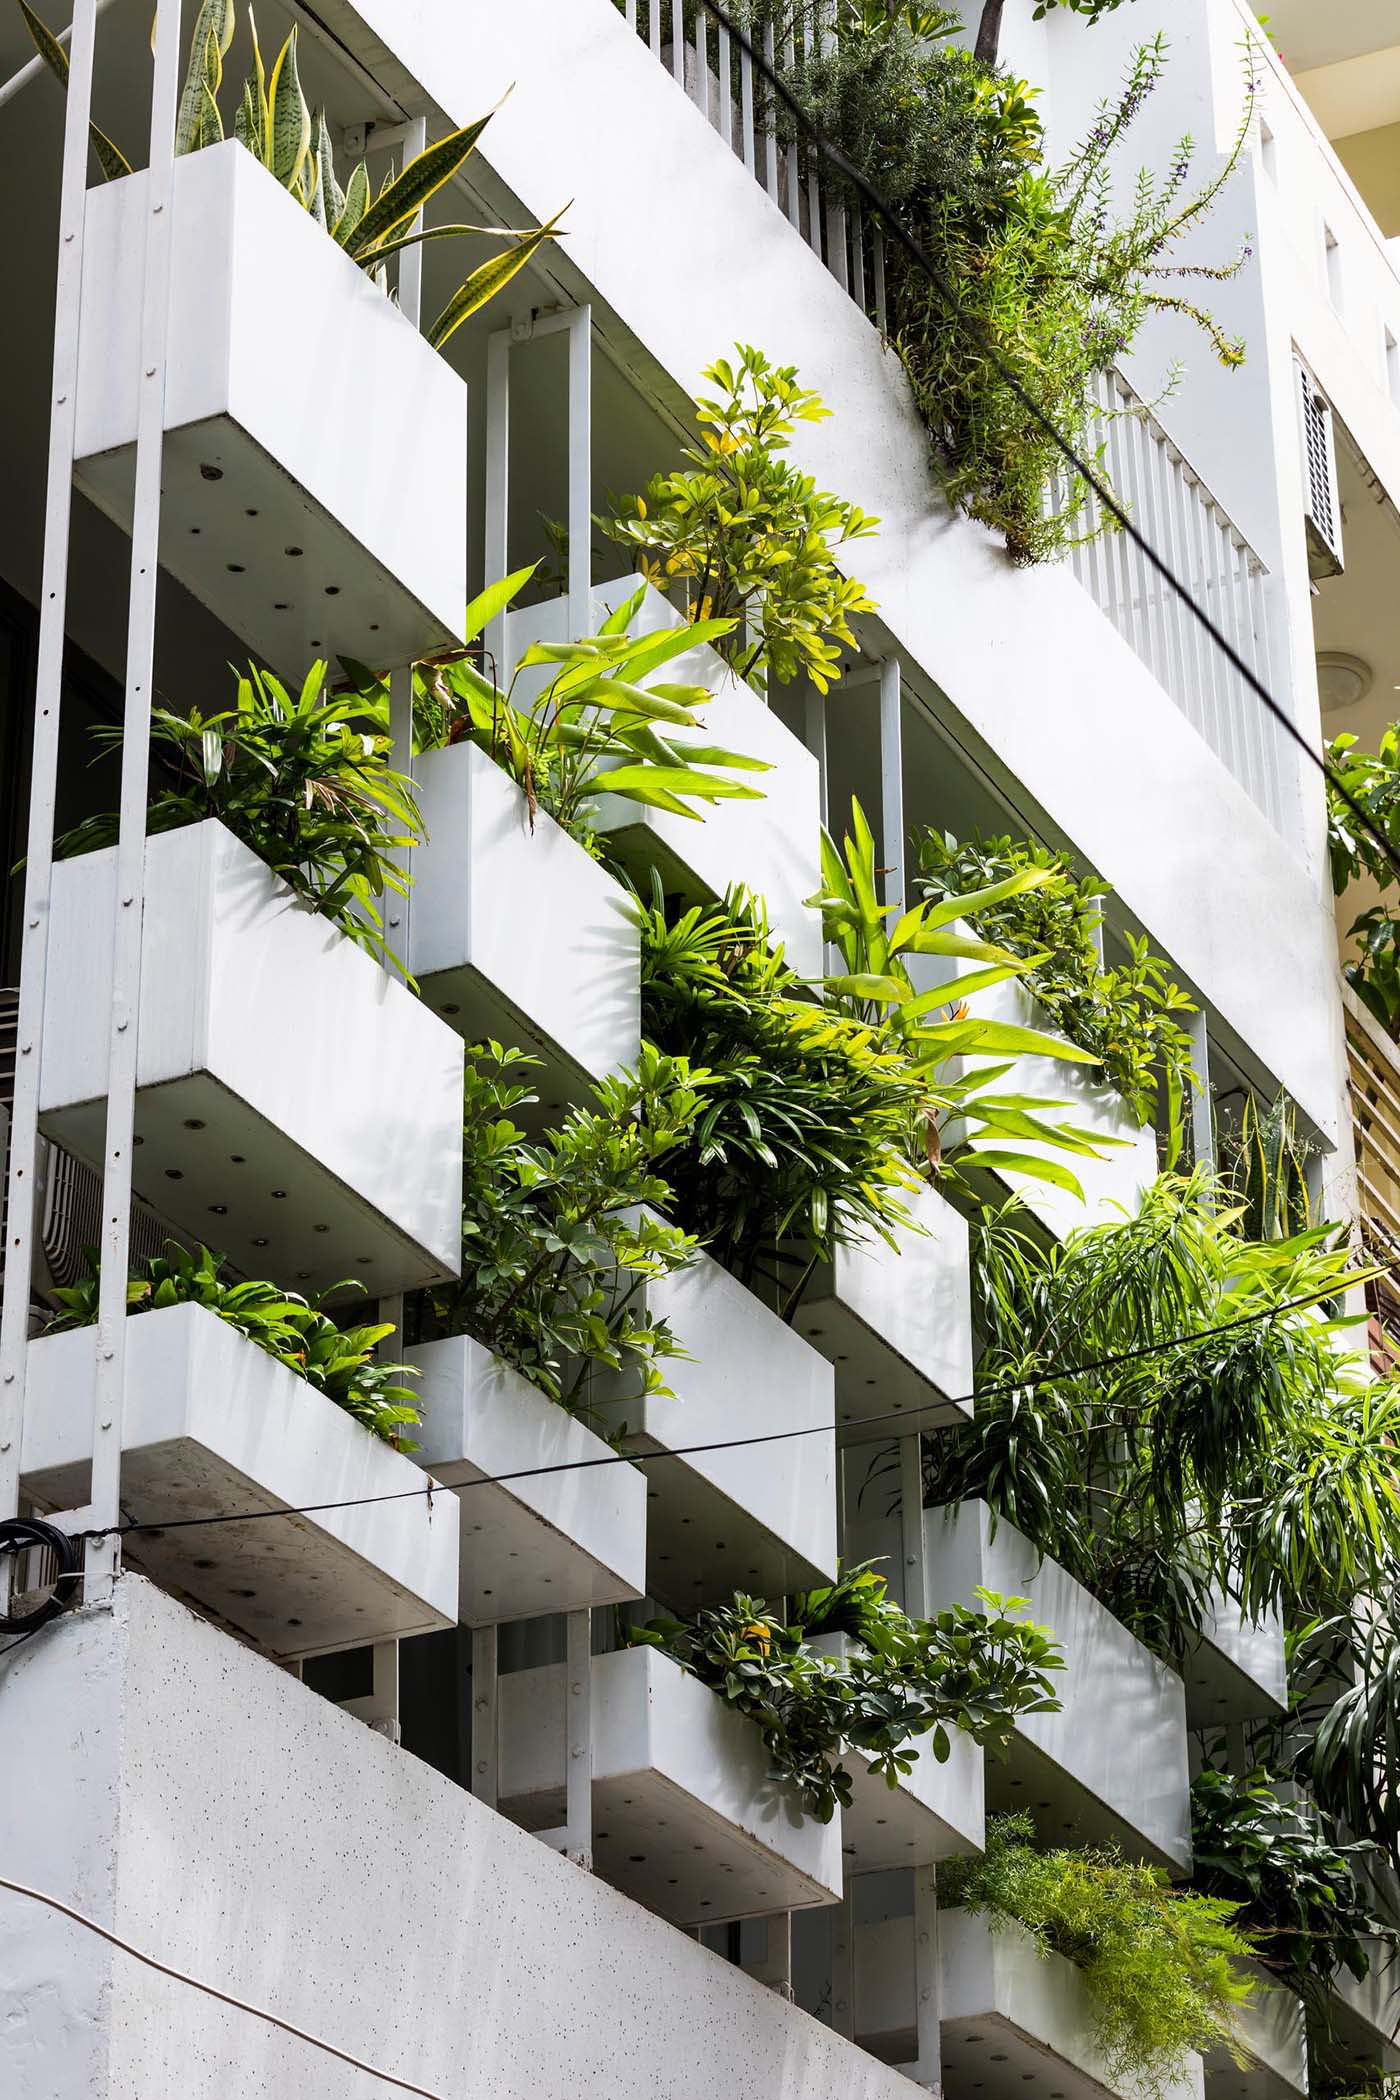 Planters have been added to the facade of this modern house, incorporating a  natural element into the concrete exterior.